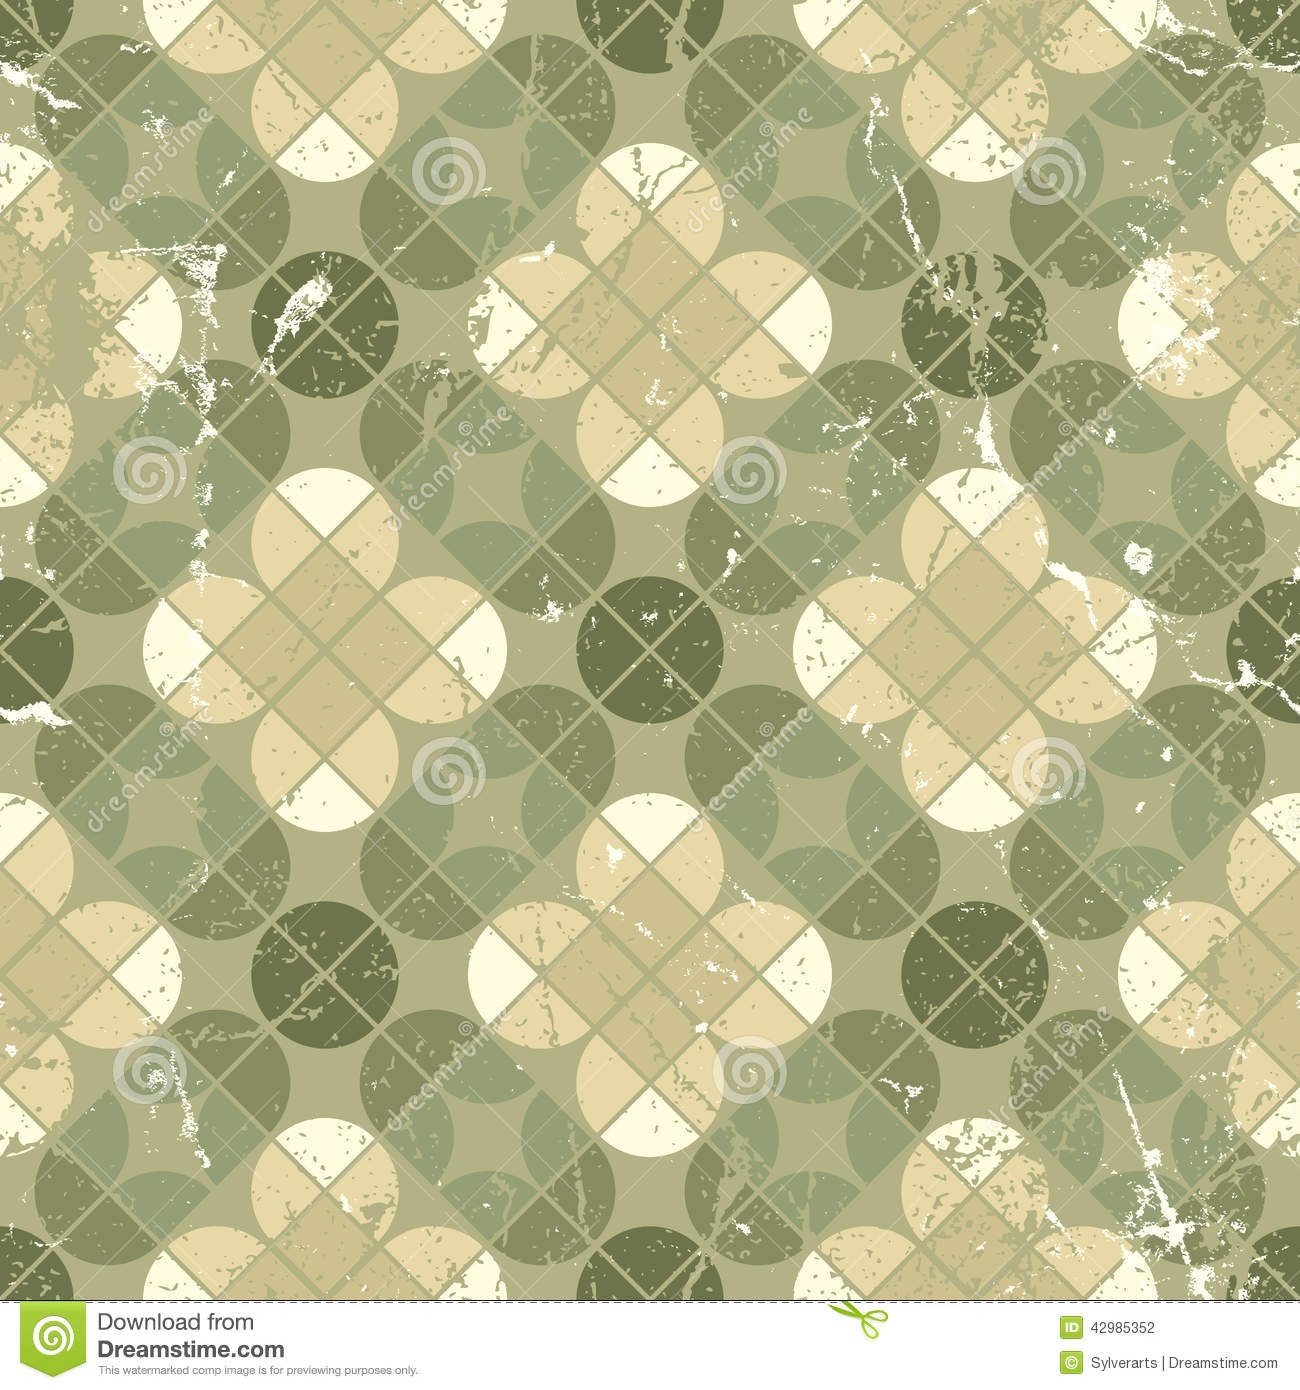 Vintage Tiles With Grunge Texture Seamless Background